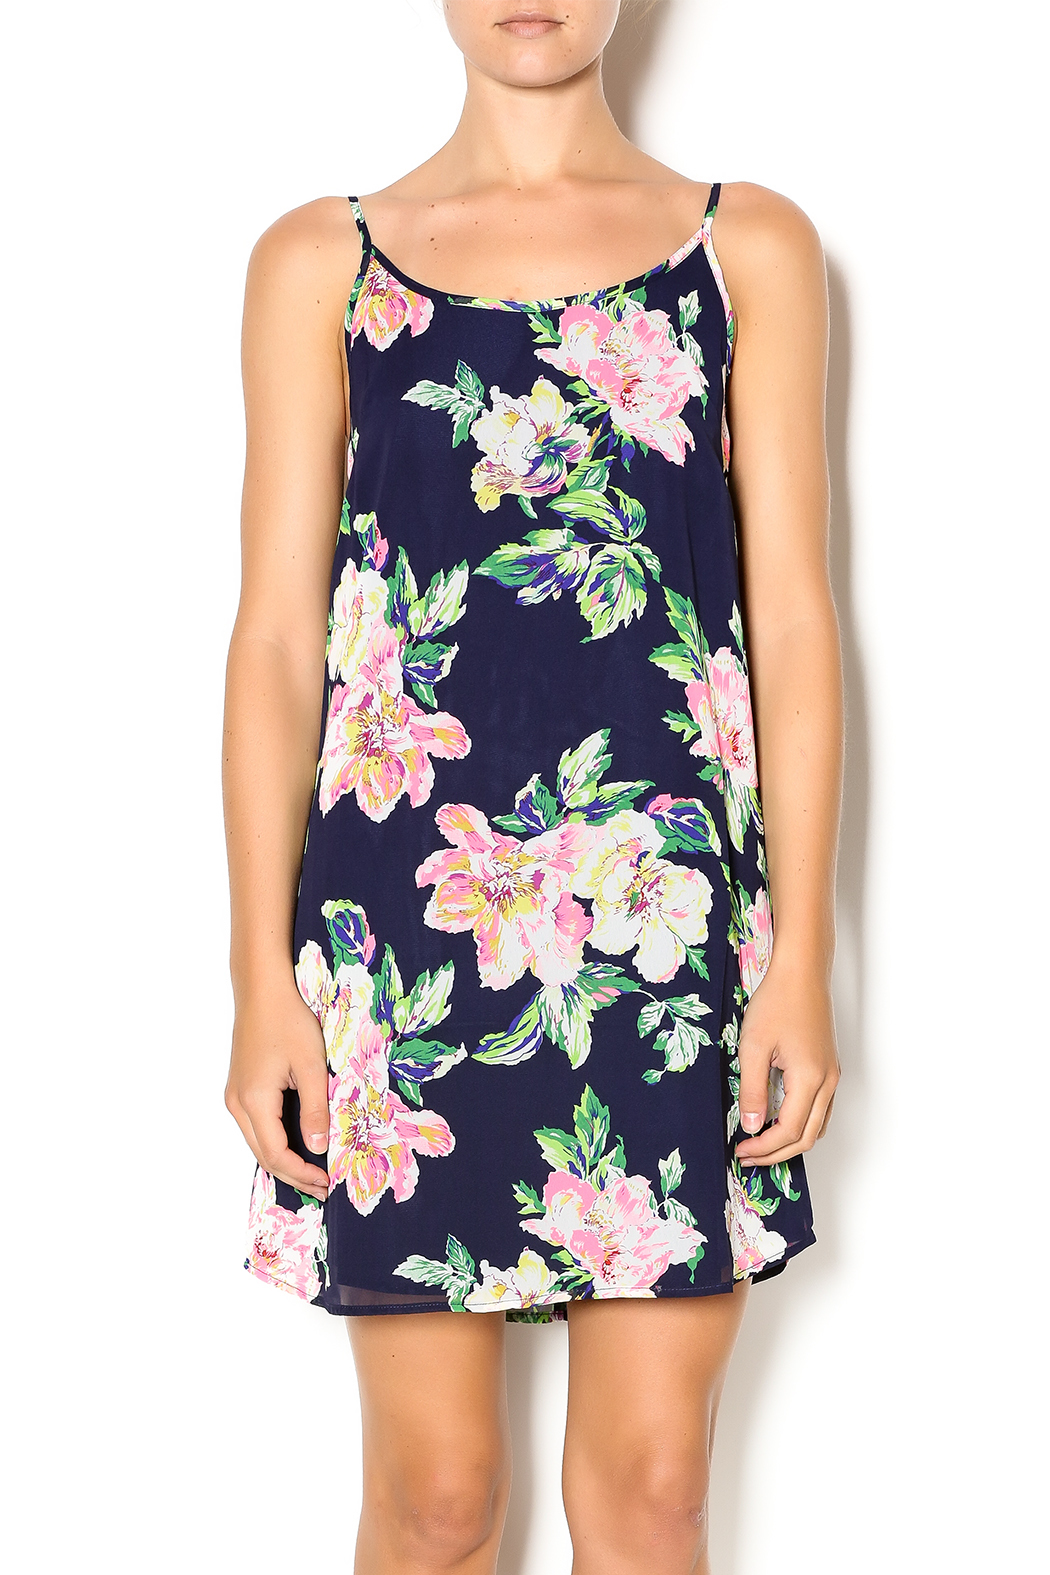 Everly Floral Dress - Main Image